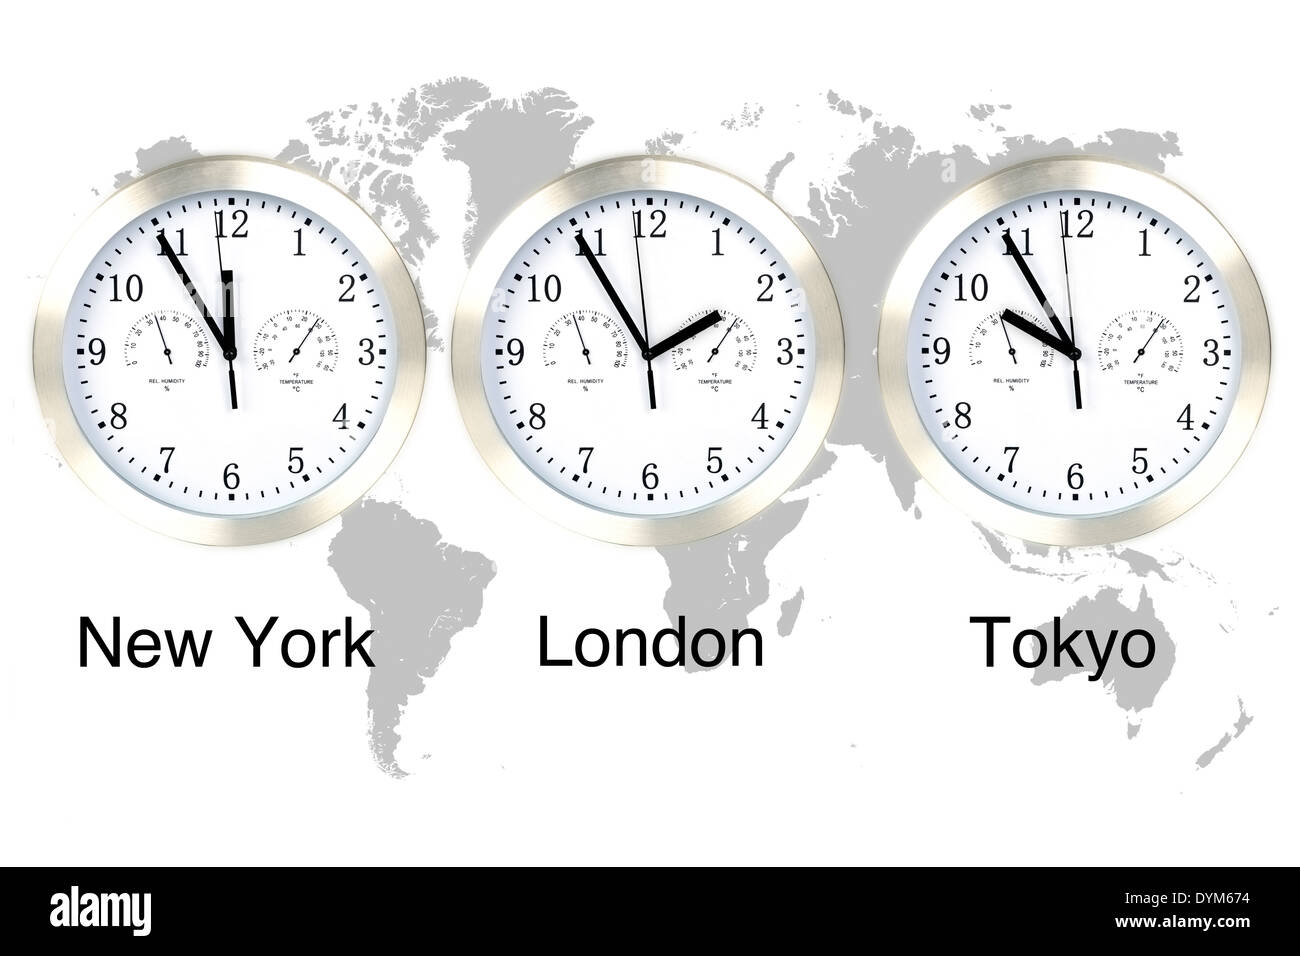 World Time Zones Time In London New York And Tokyo